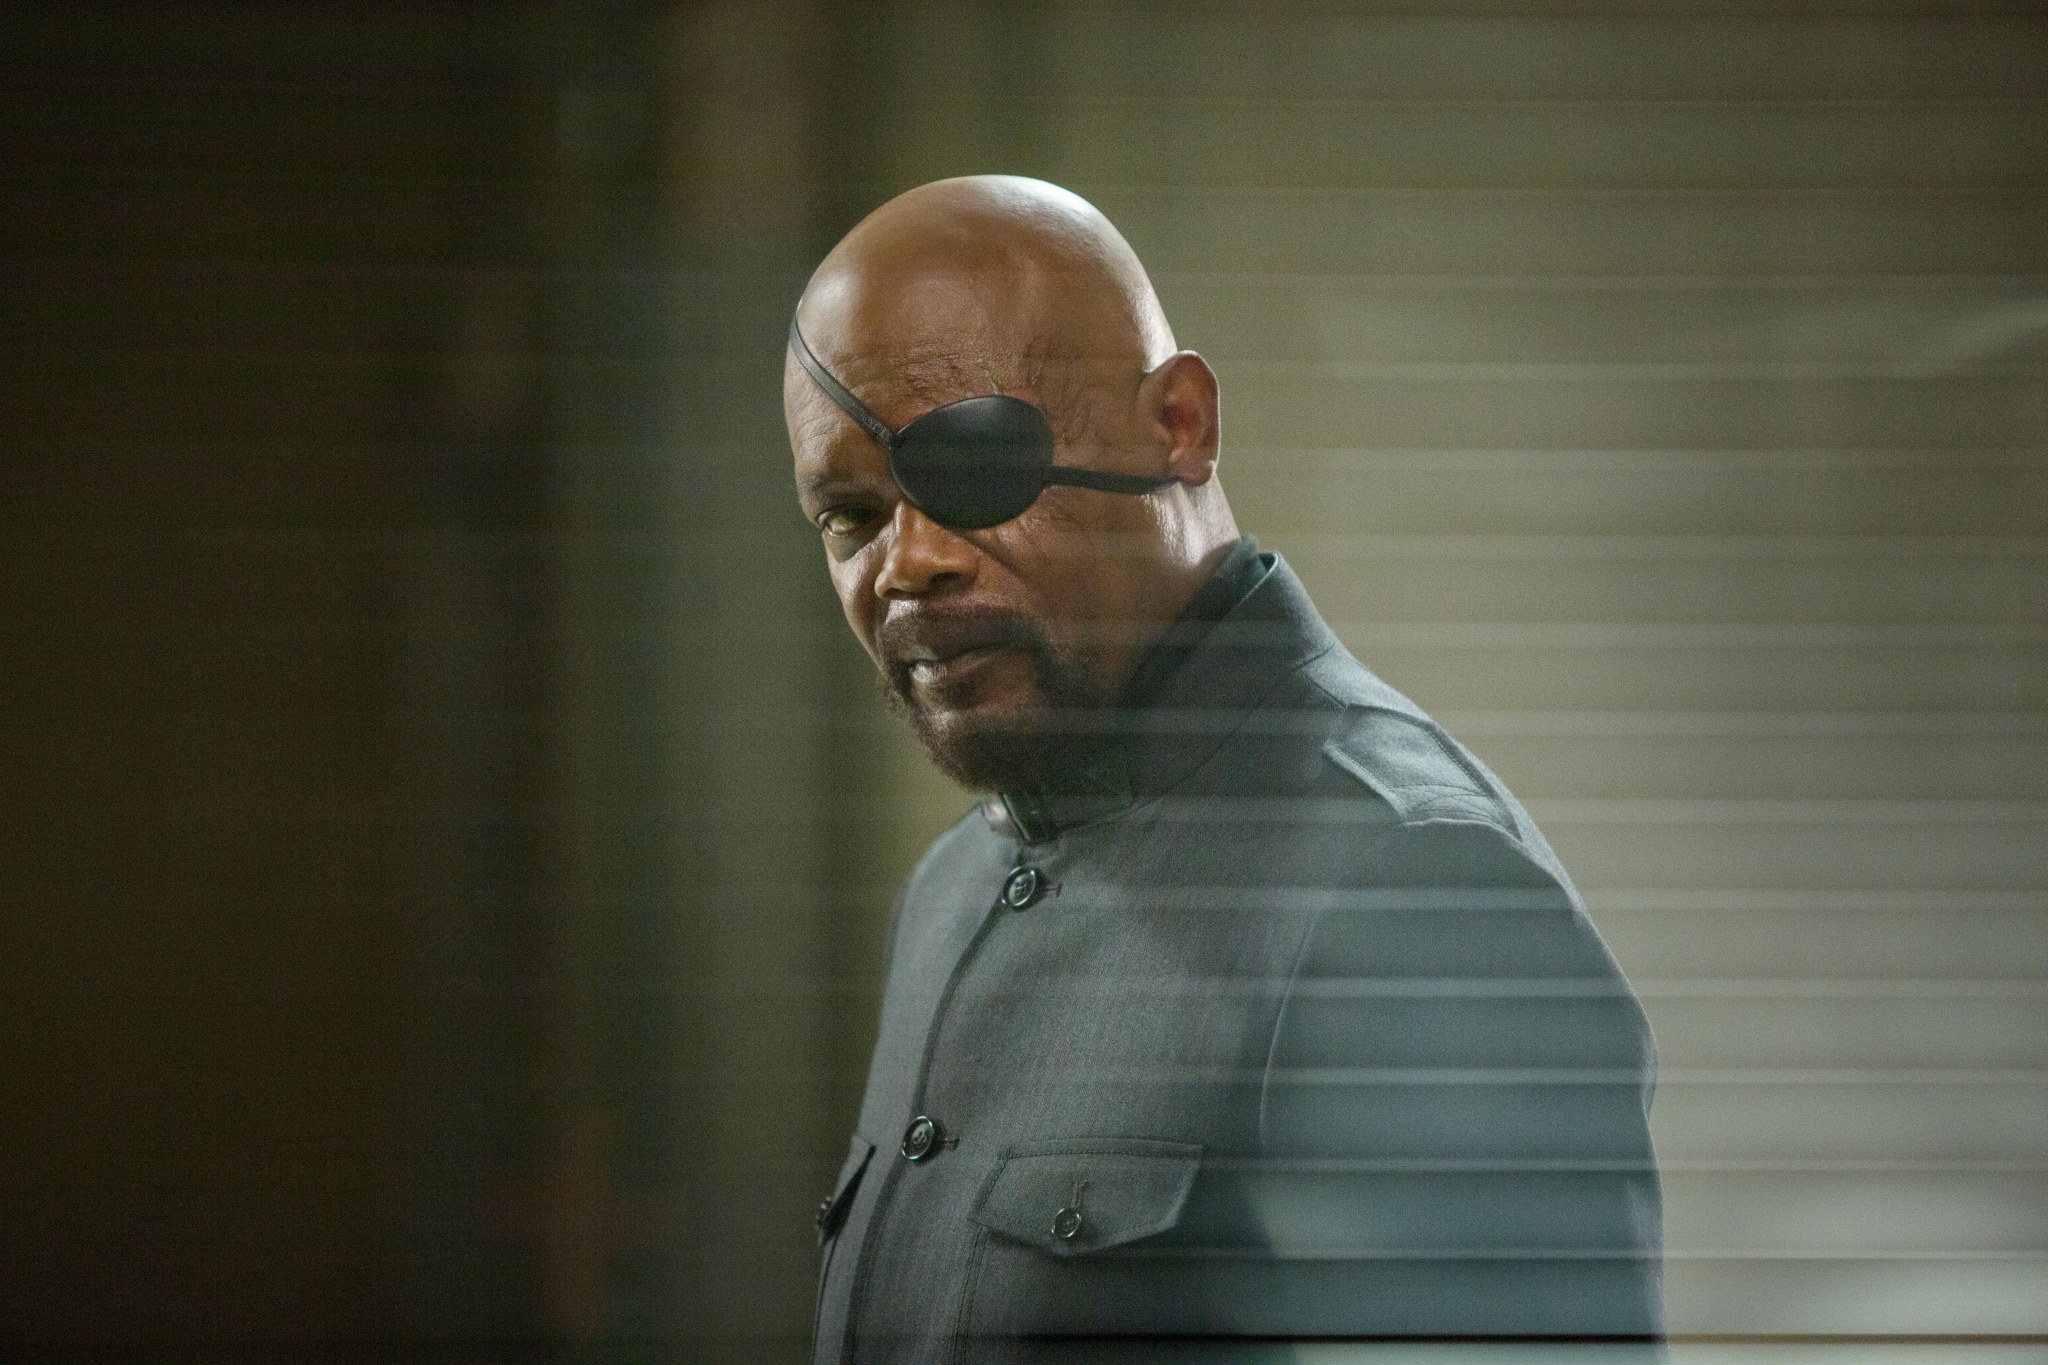 Nick Fury fading off into the sunset